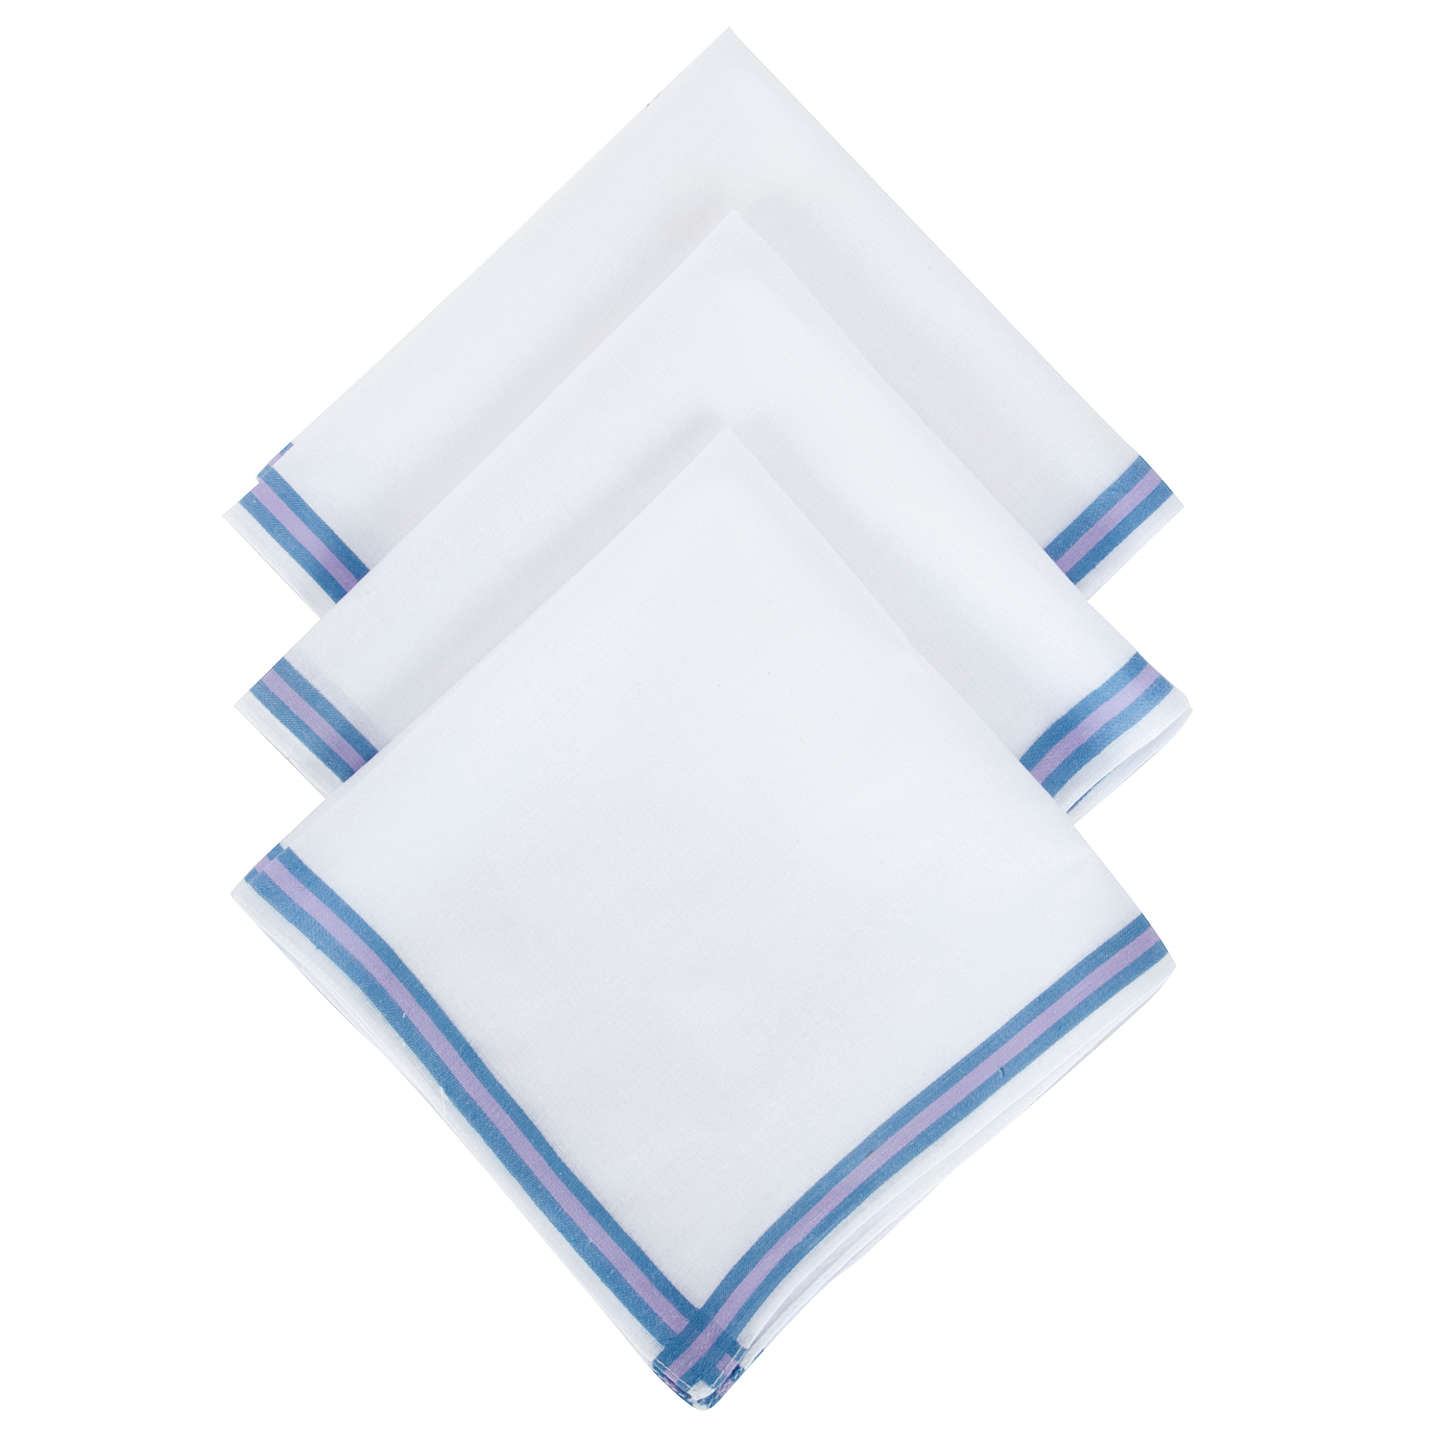 BuyJohn Lewis Semi Plain Handkerchiefs, Pack of 3, White Online at johnlewis.com